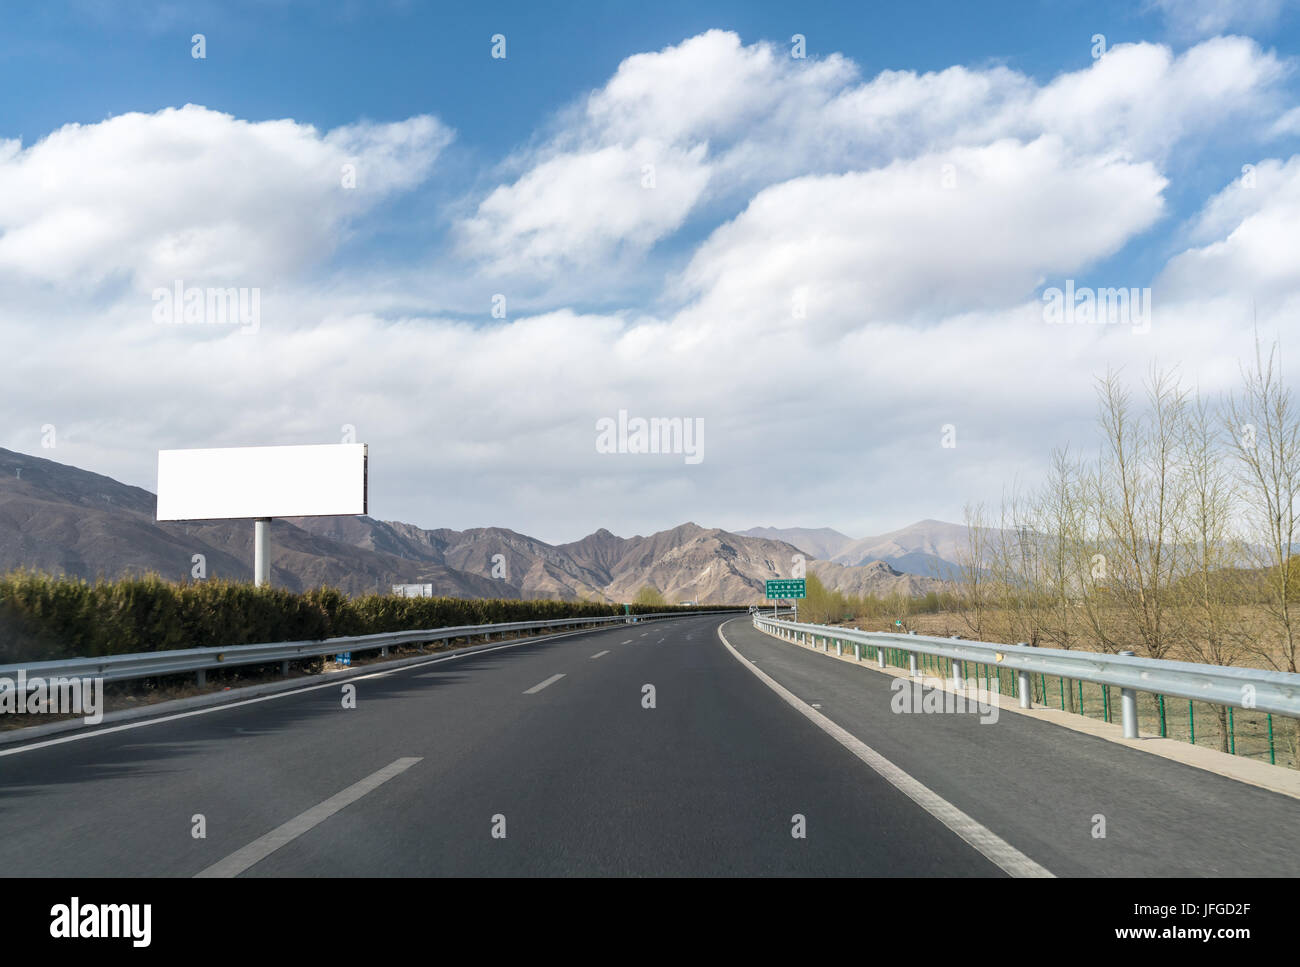 large billboard and expressway in tibet - Stock Image